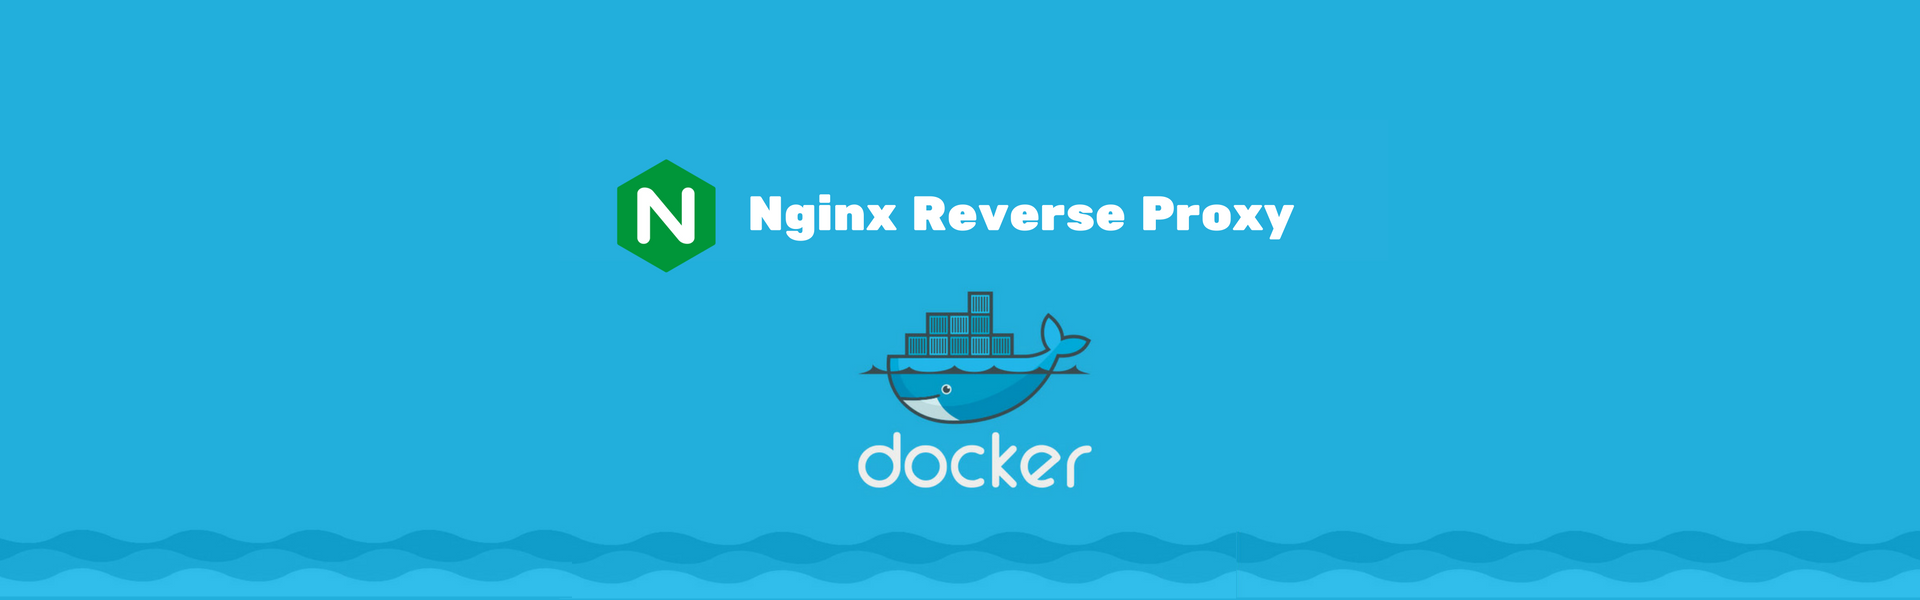 How to use Nginx as reverse proxy with Docker